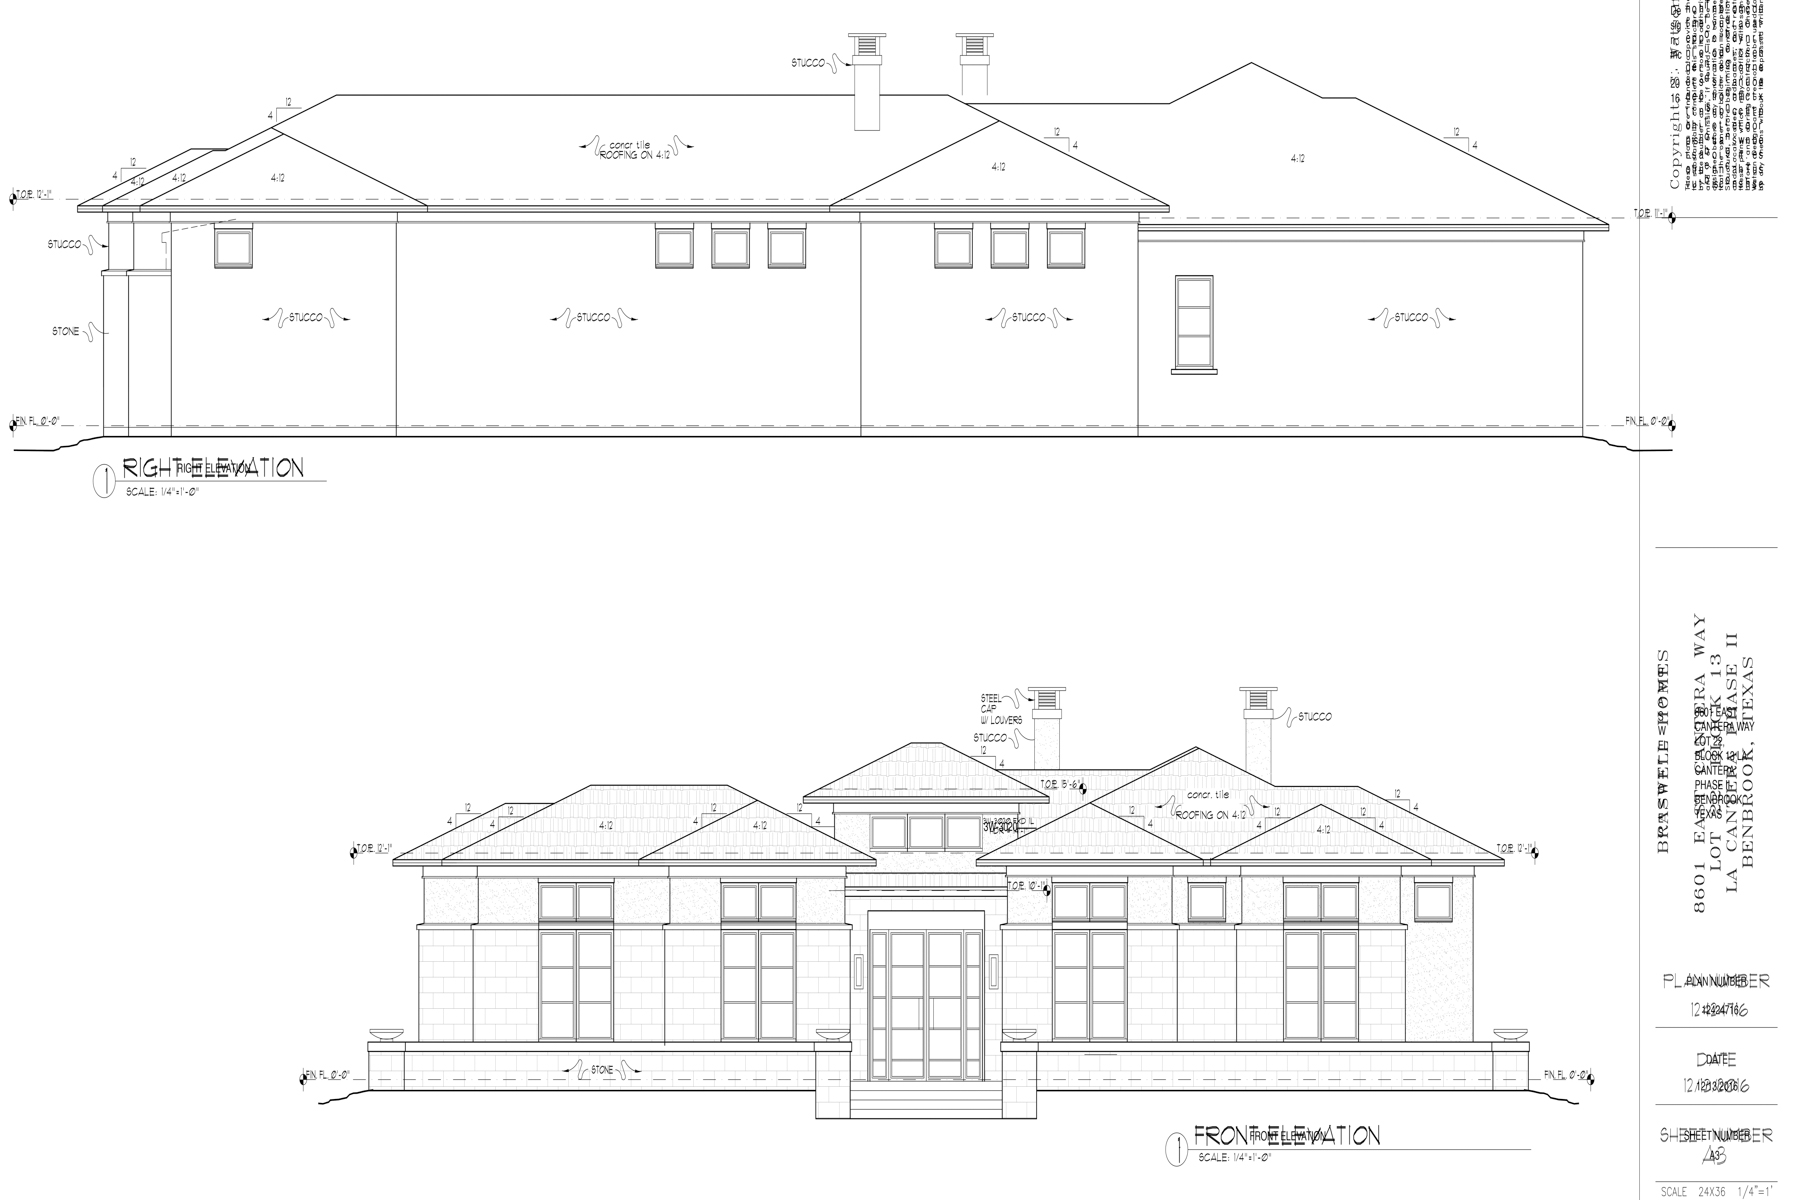 Single Family Home for Sale at New Construction in La Cantera at Team Ranch 8601 E Cantera Way Benbrook, Texas, 76126 United States